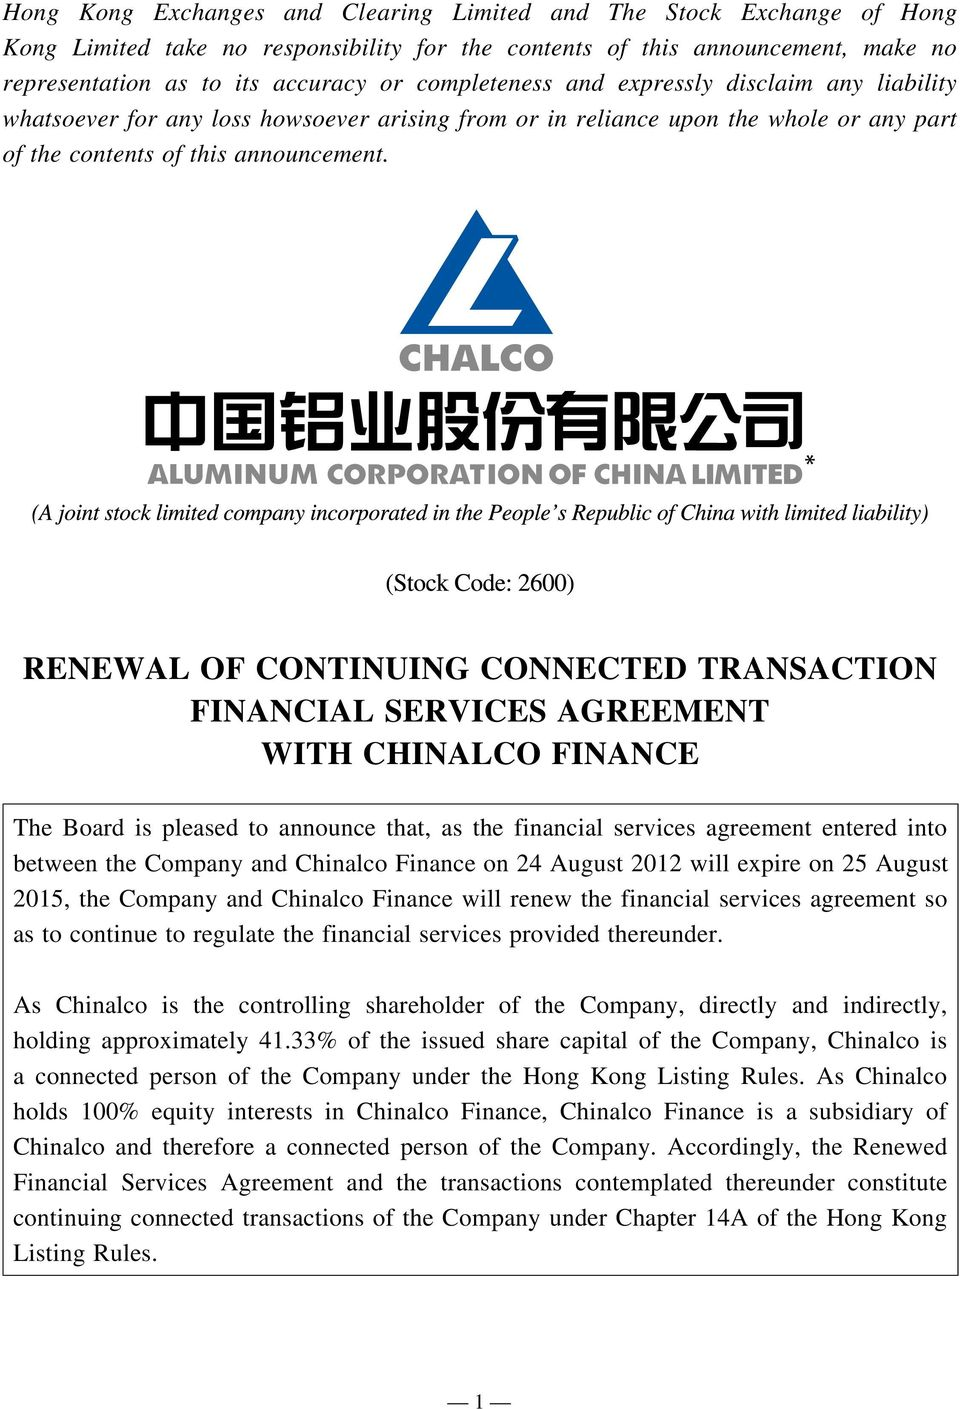 RENEWAL OF CONTINUING CONNECTED TRANSACTION FINANCIAL SERVICES AGREEMENT WITH CHINALCO FINANCE The Board is pleased to announce that, as the financial services agreement entered into between the